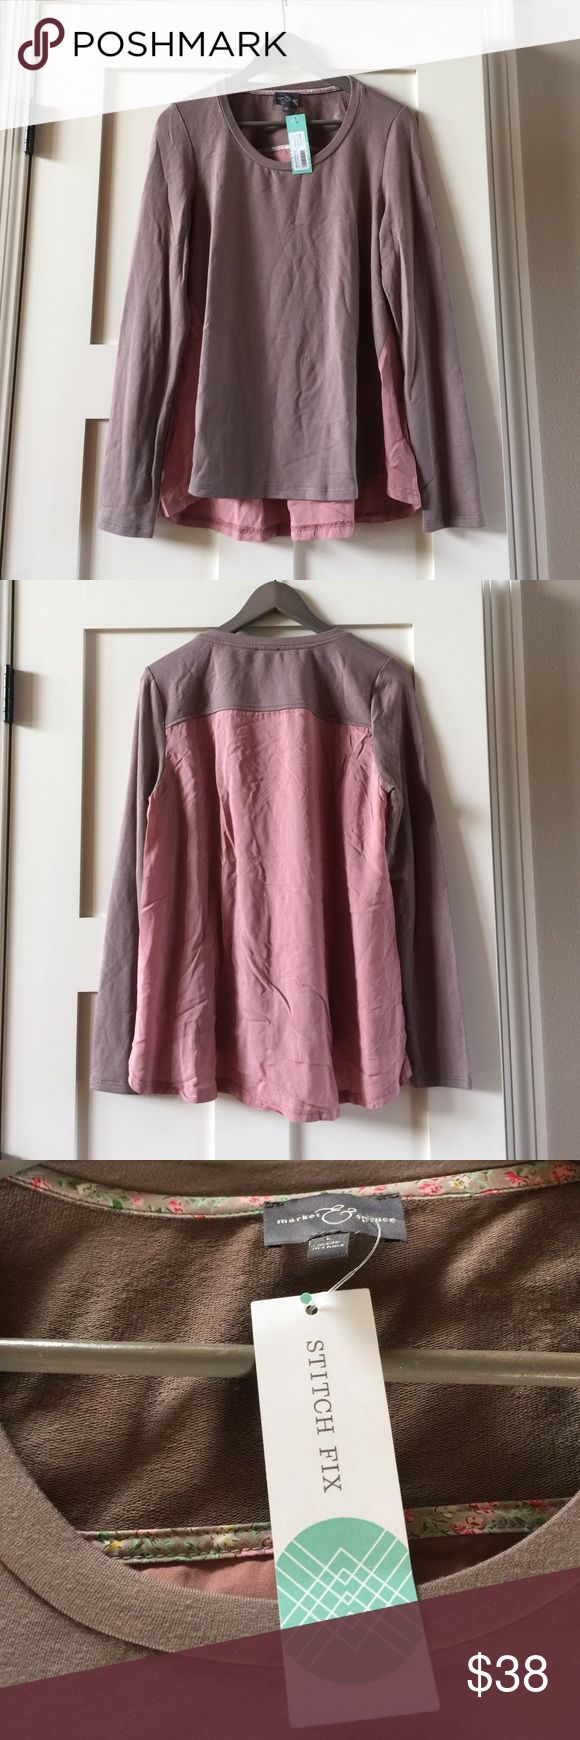 NWT Market & Spruce Stitch Fix pink sheer back top Market & Spruce a Stitch Fix brand SzL long sleeve sheer back top. Lots of detail. Has a beautiful sheer back in blush pink color. Would look cute with skinny jeans and heels or flats. Comes from free and smoke free home. Market and Spruce a Stitch Fix brand Tops Blouses